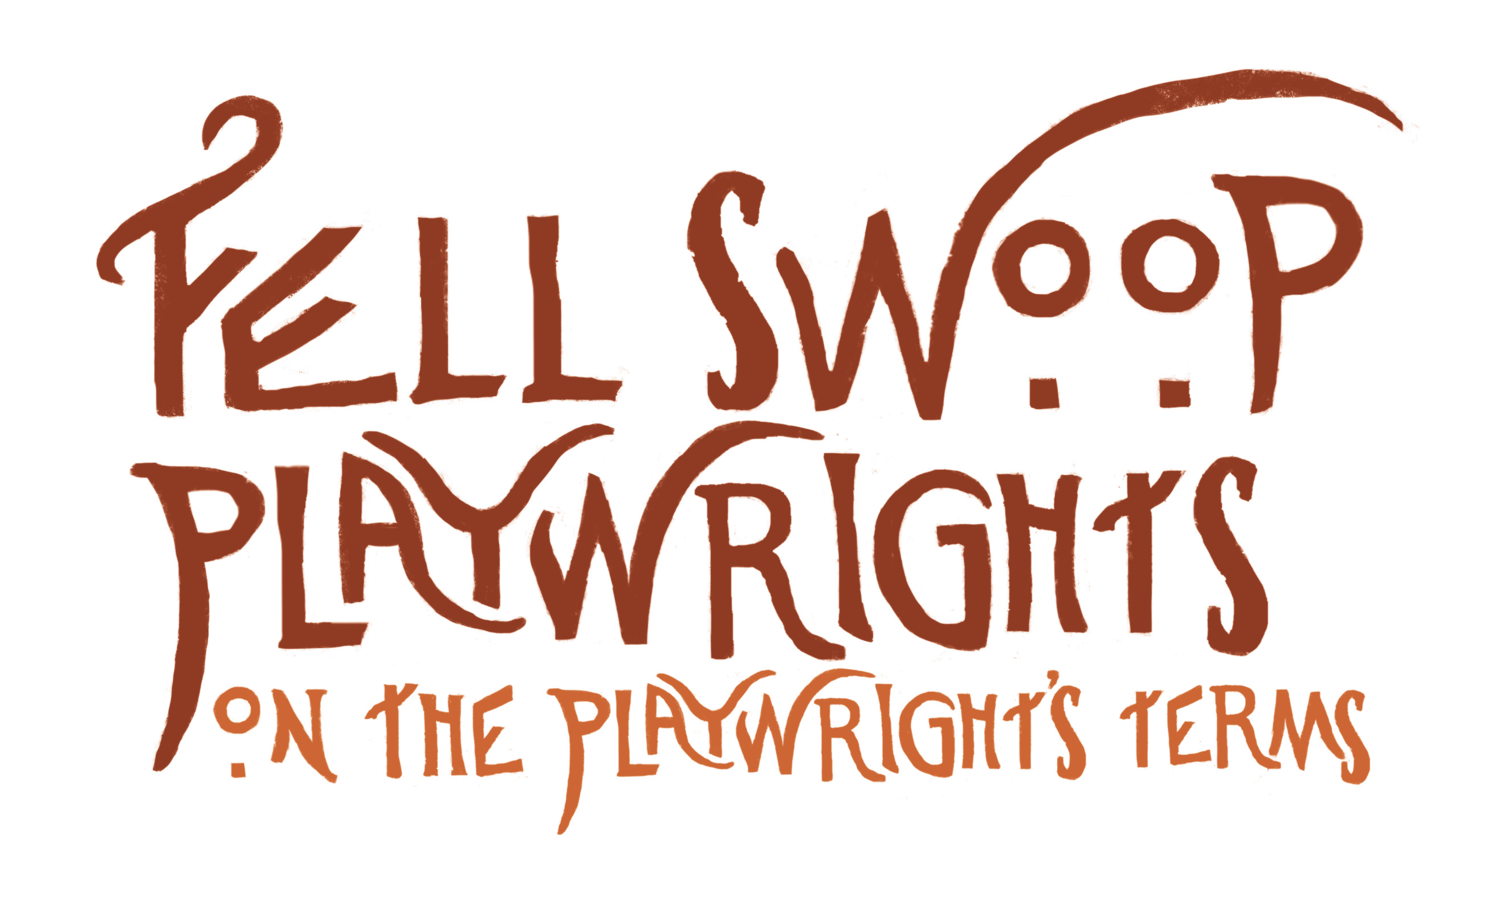 Fell Swoop Playwrights